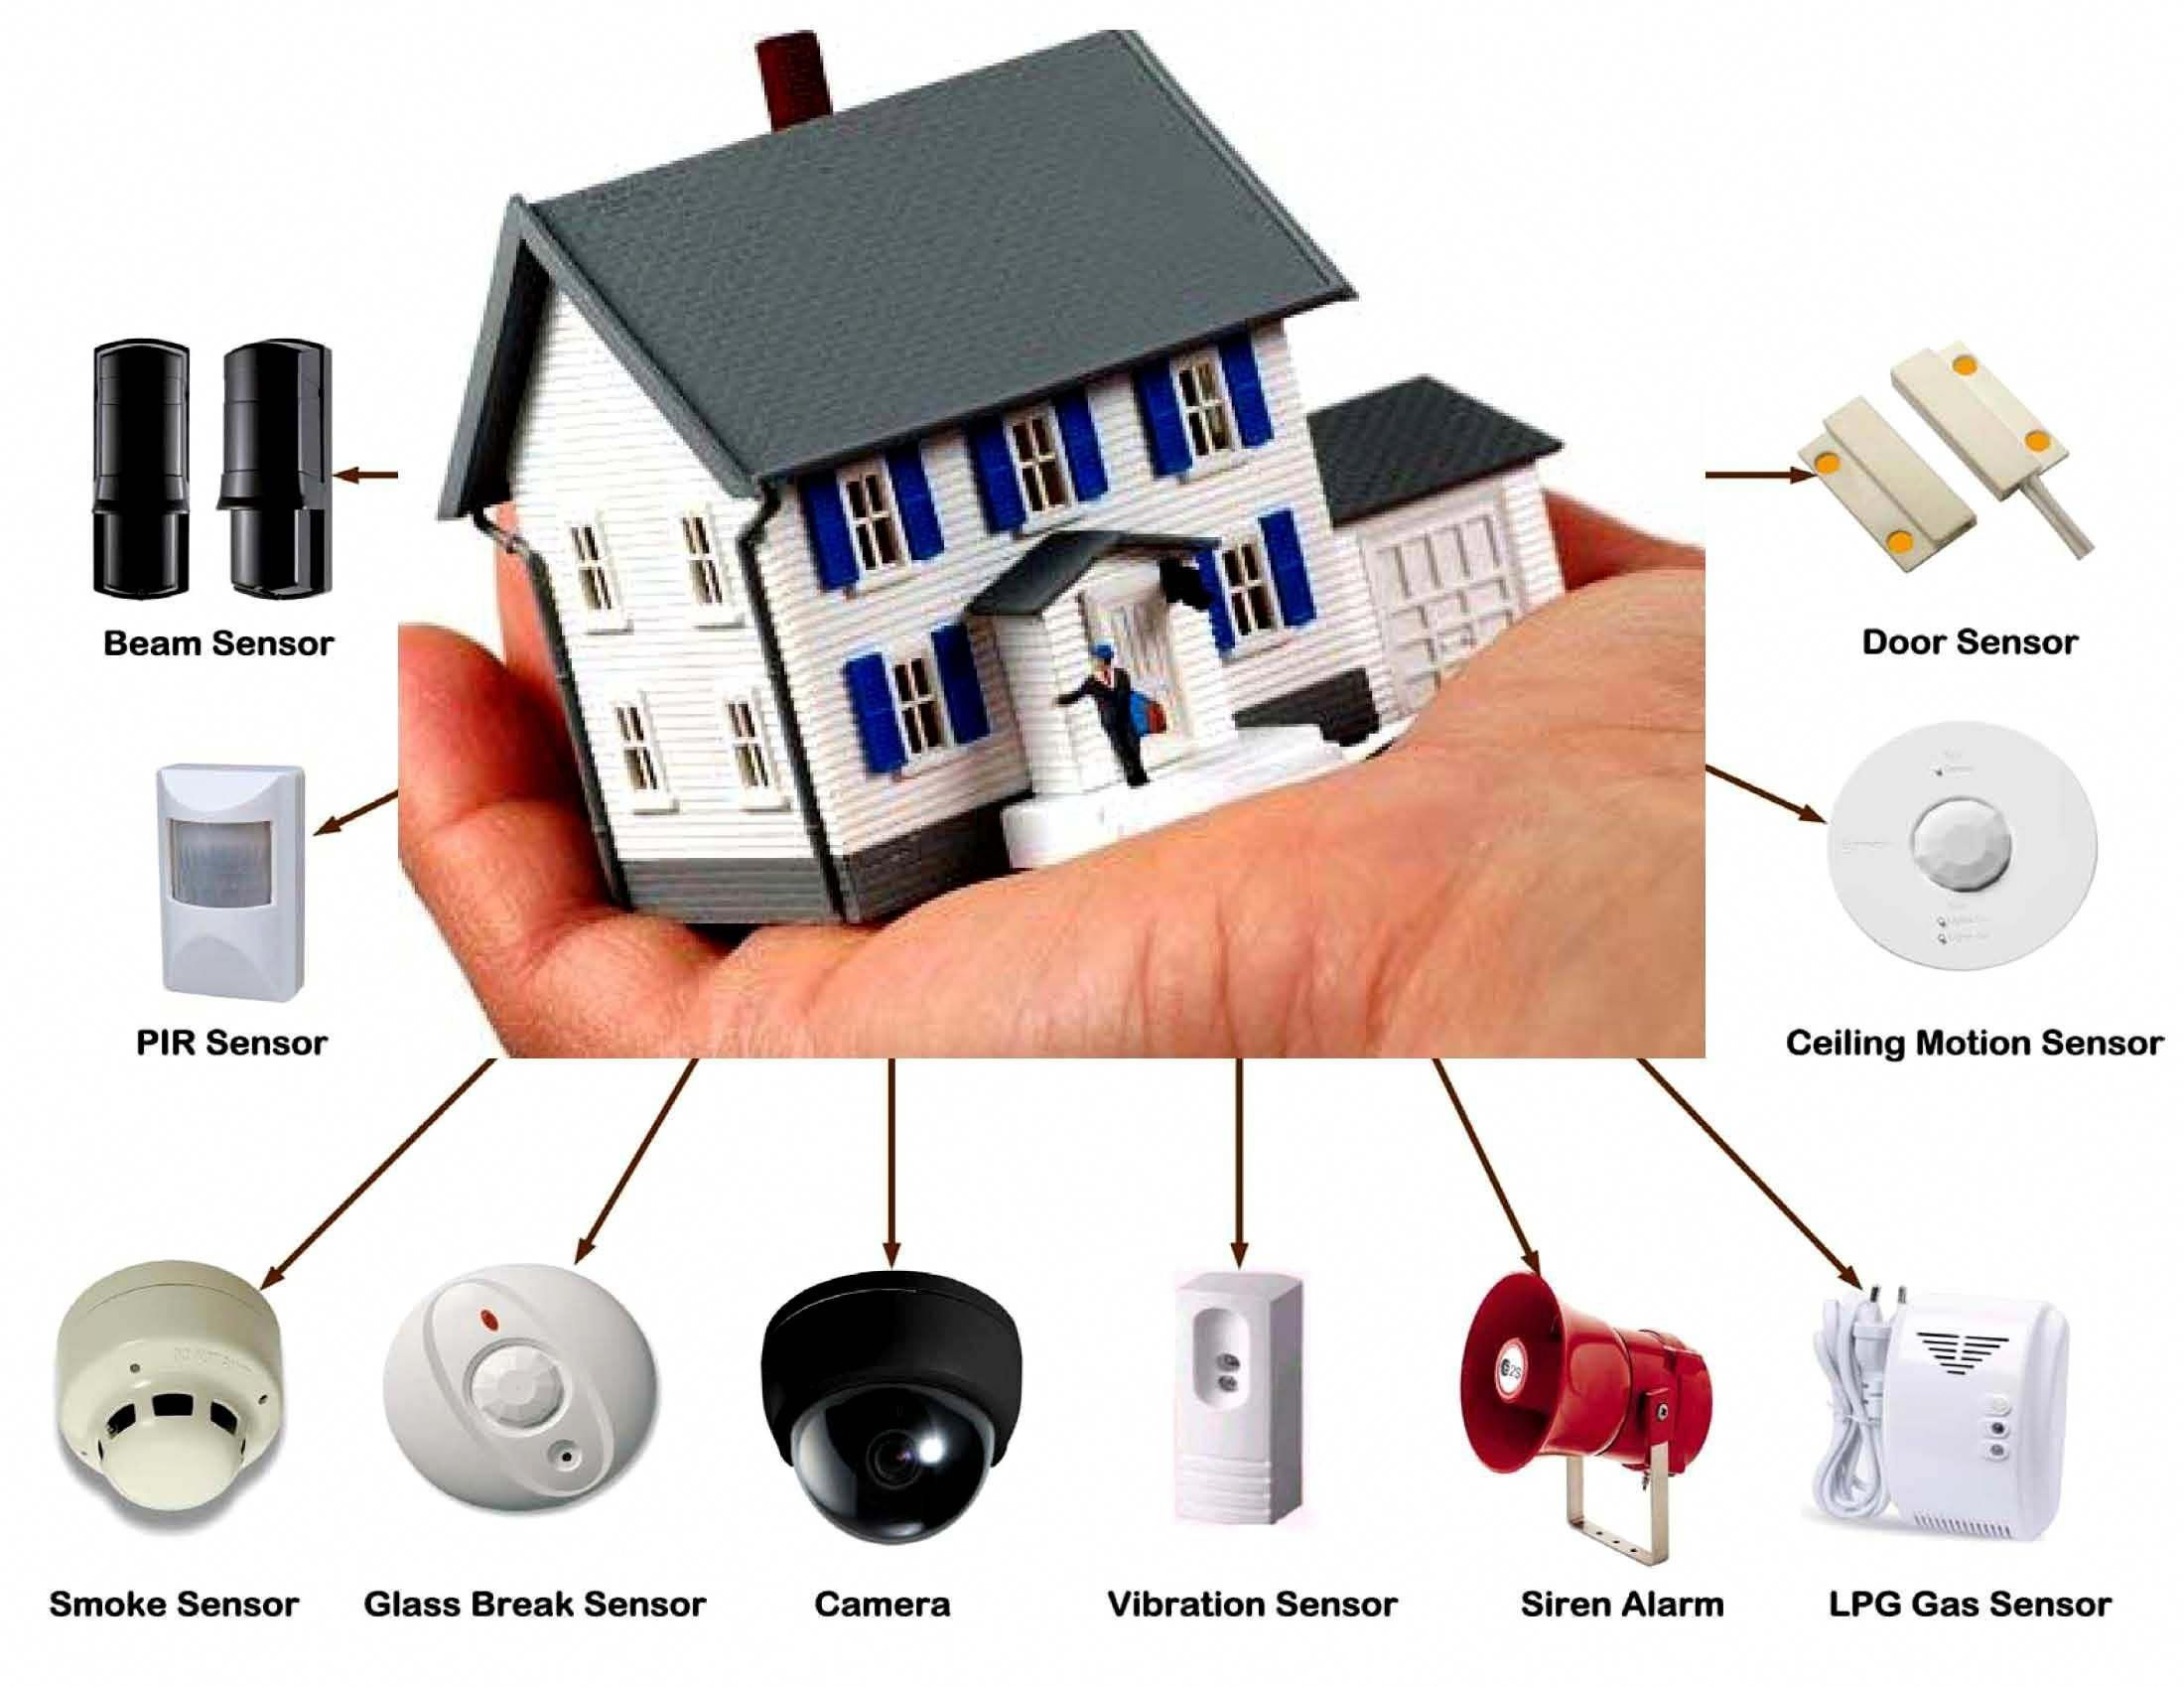 Our Experts Review And Compare The Top Diy Home Security Systems This Is A Mus Best Home Security System Alarm Systems For Home Wireless Home Security Systems